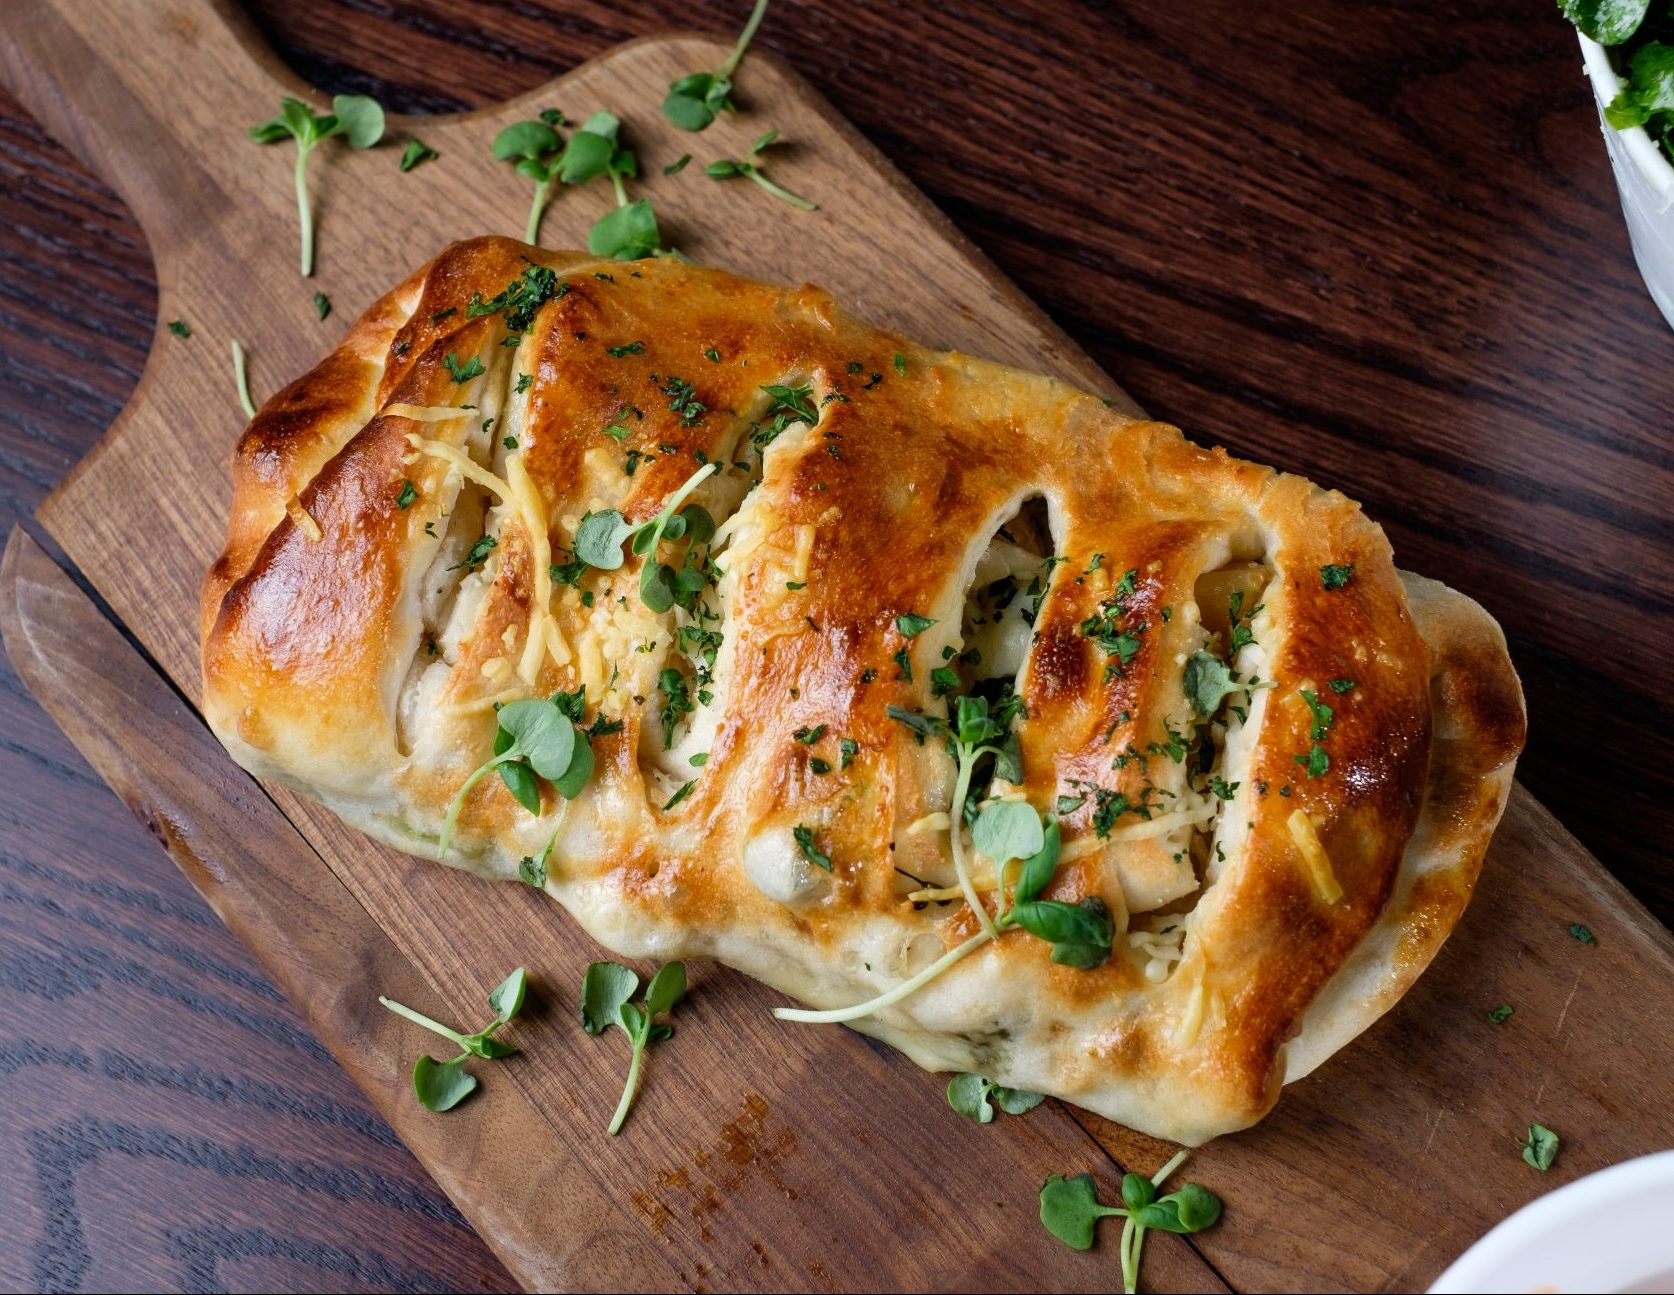 CHICKEN & BROCCOLI RABE STROMBOLI